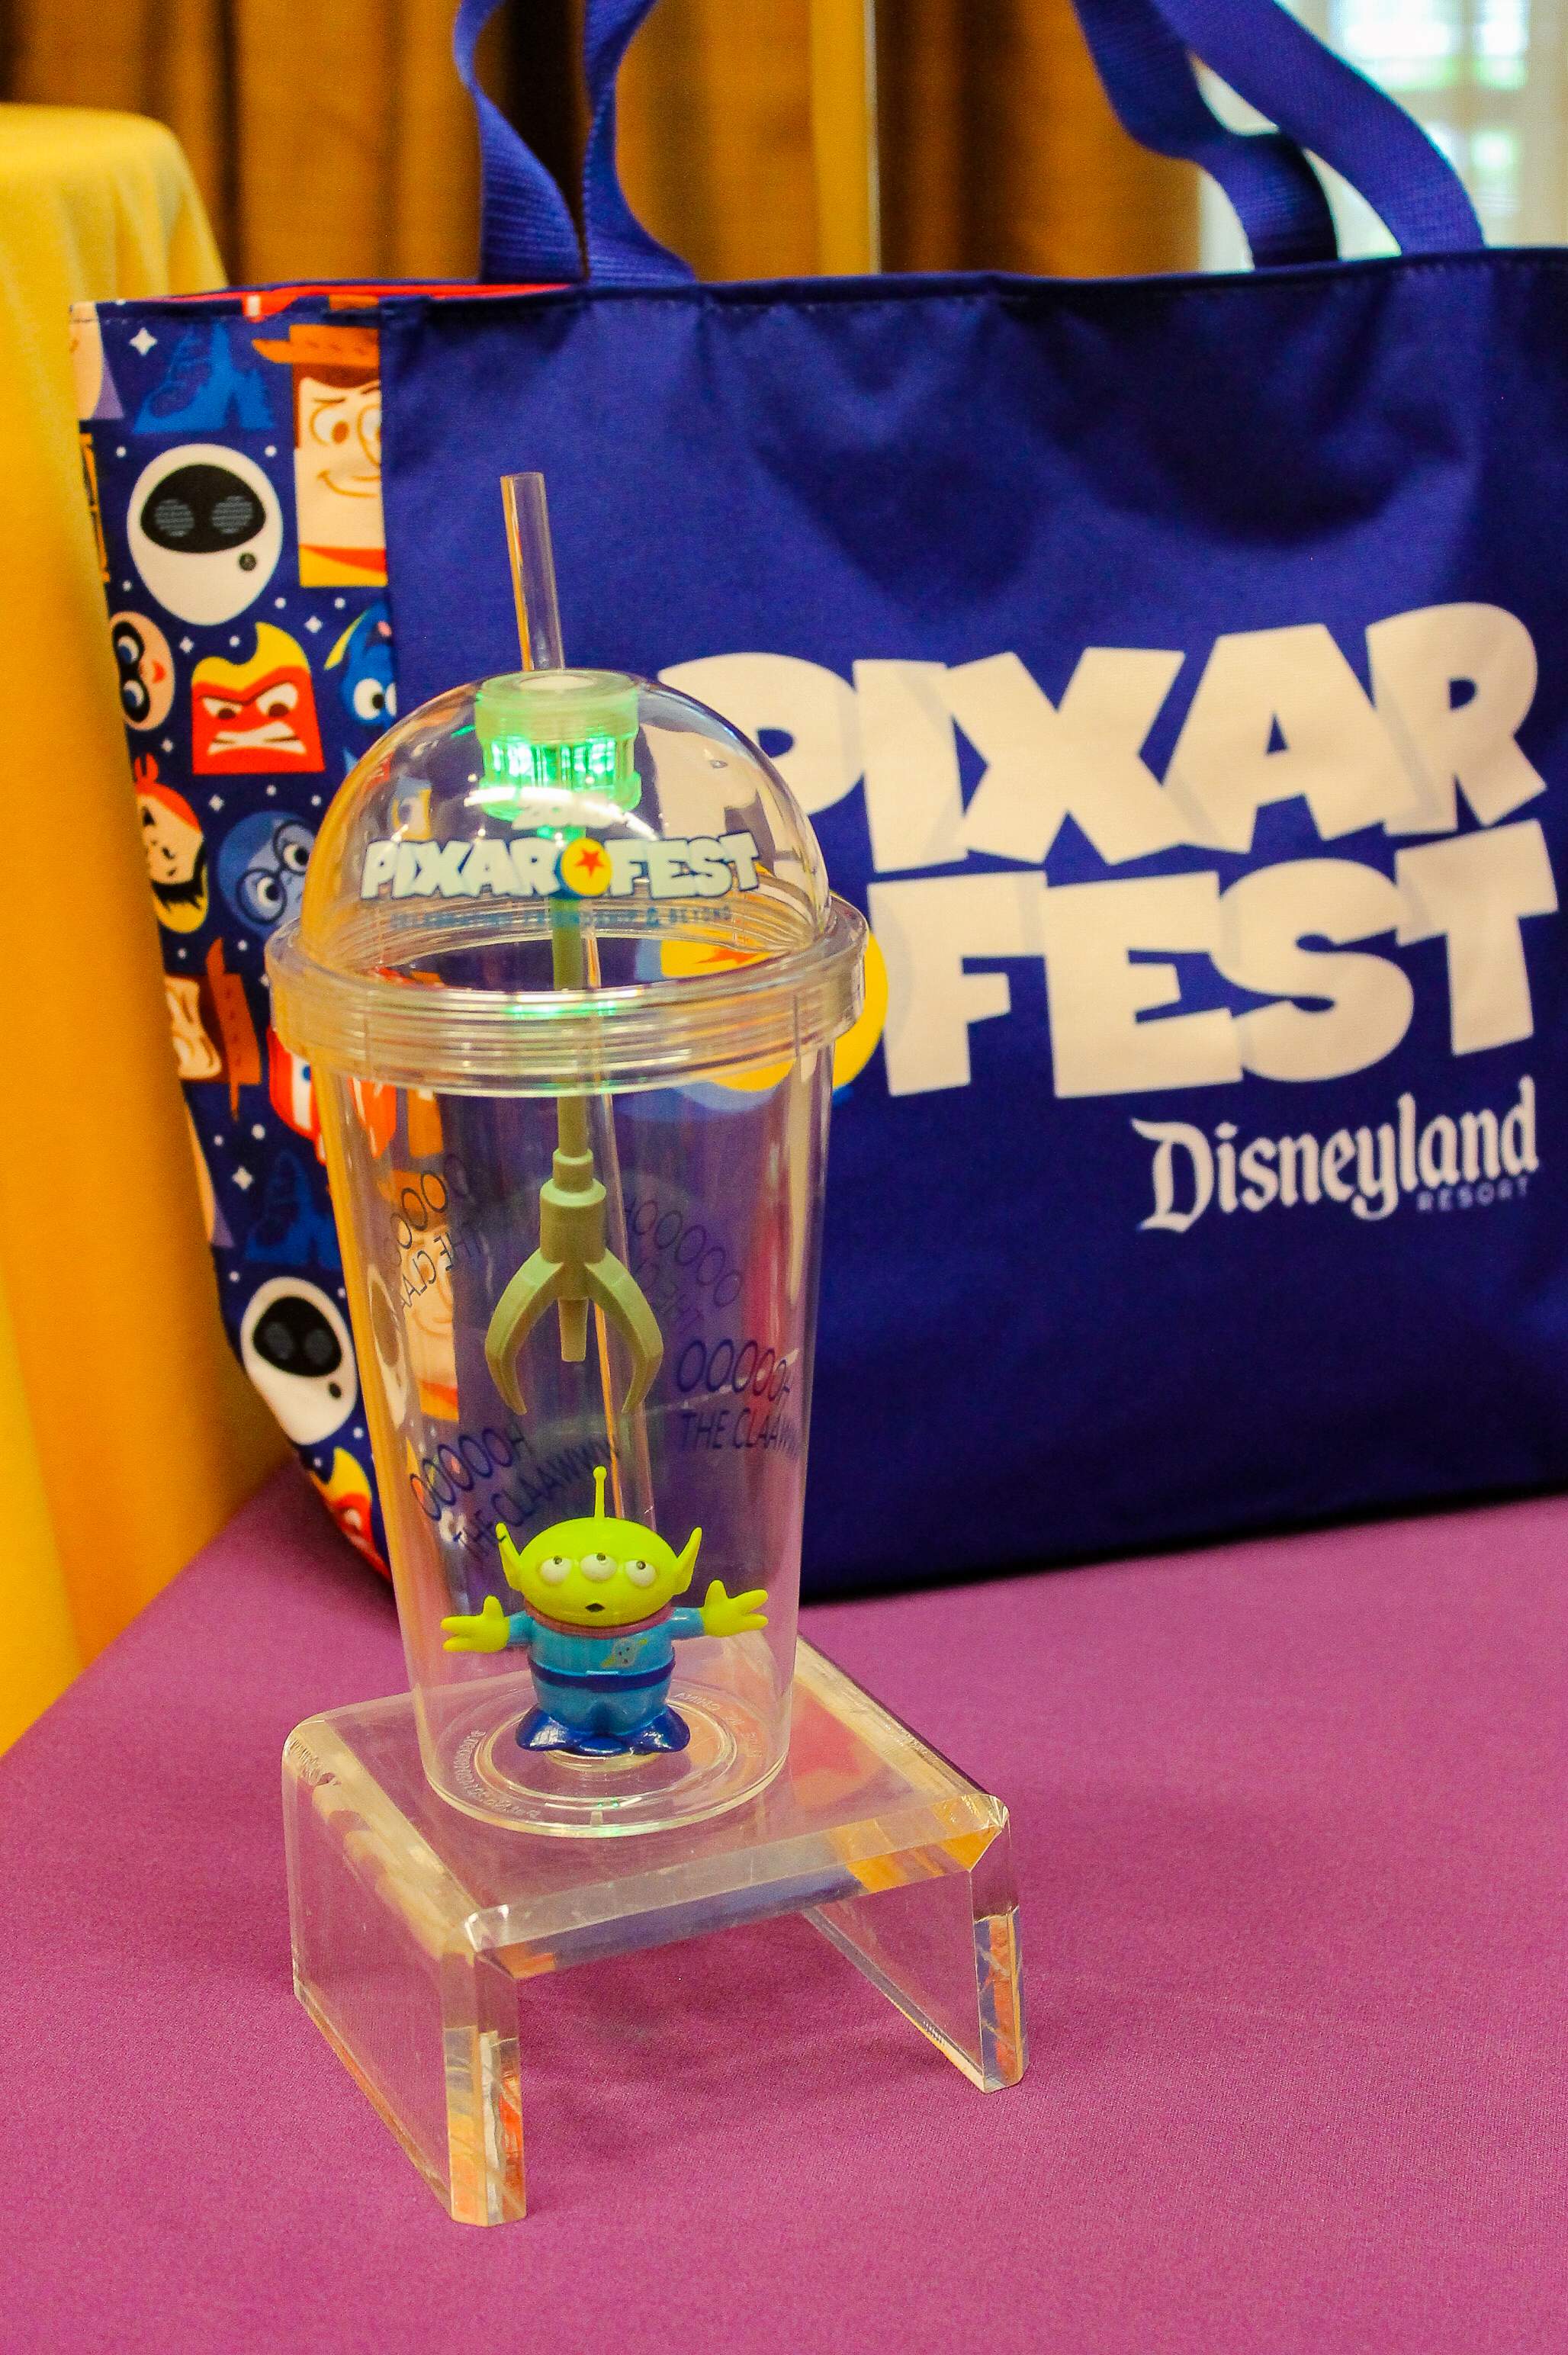 Disneyland Pixarfest: Space Alien Light Up Tumbler